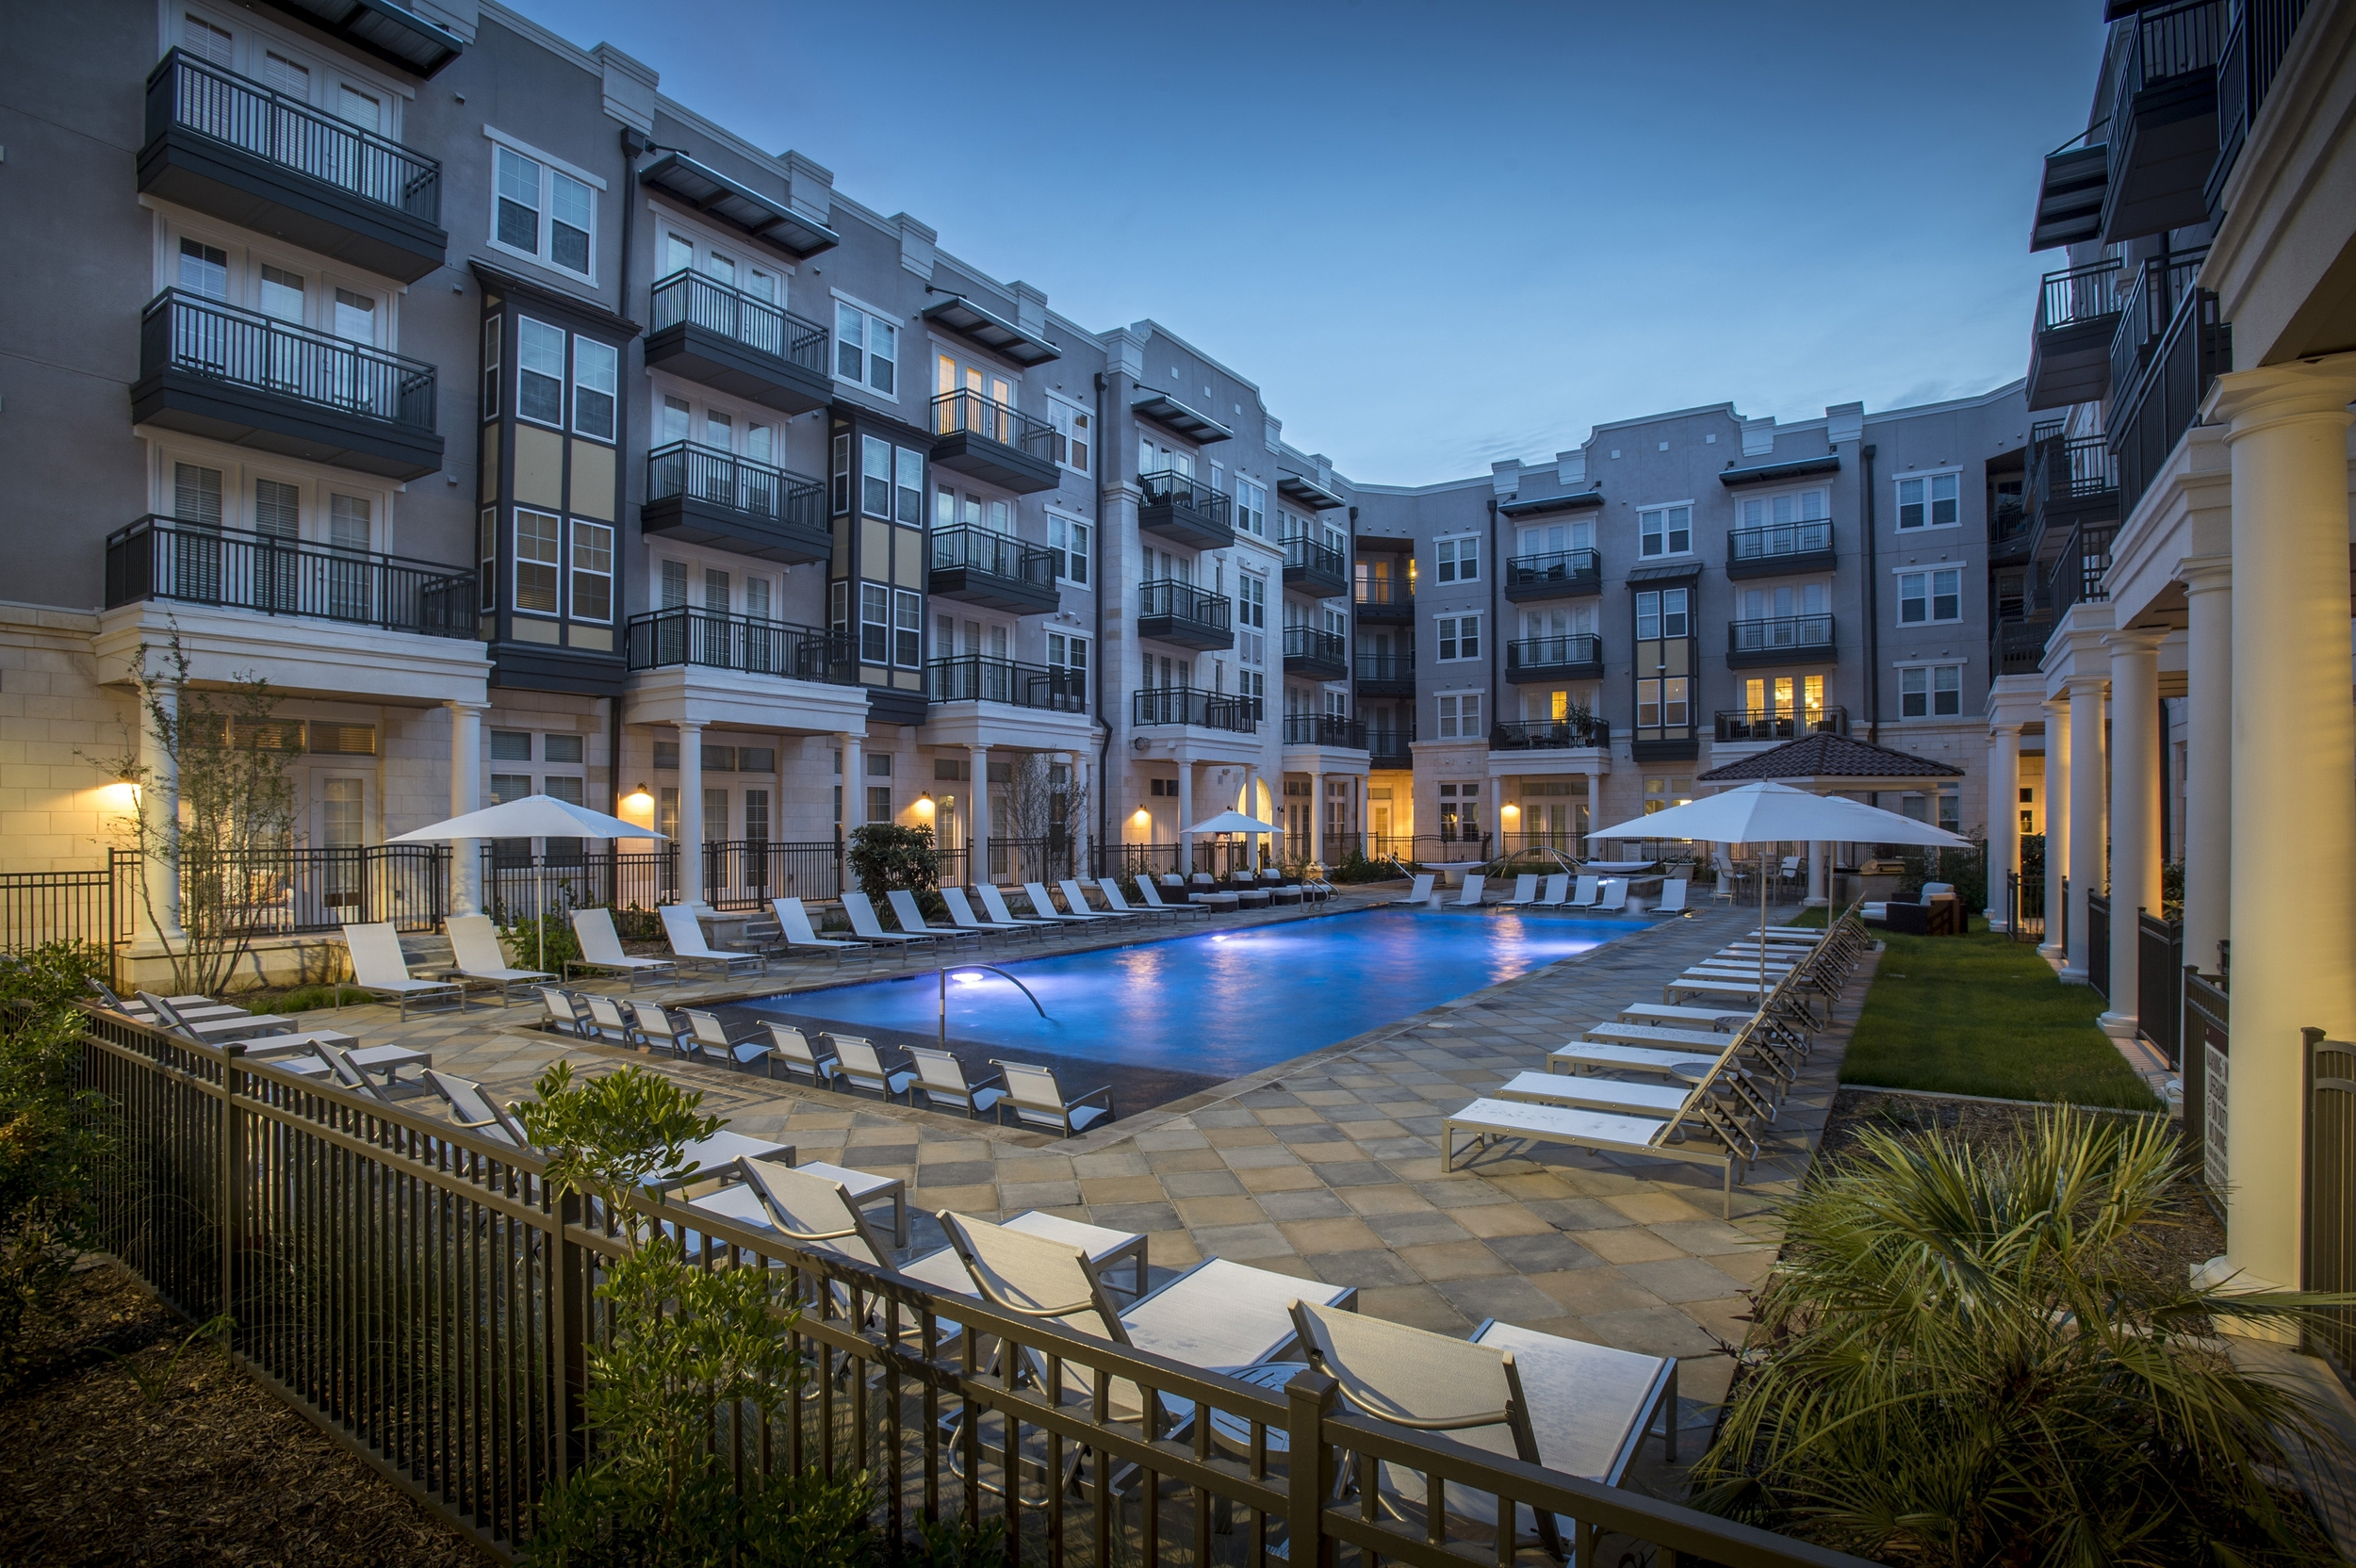 The_Residences_Pool_Area_33.JPG